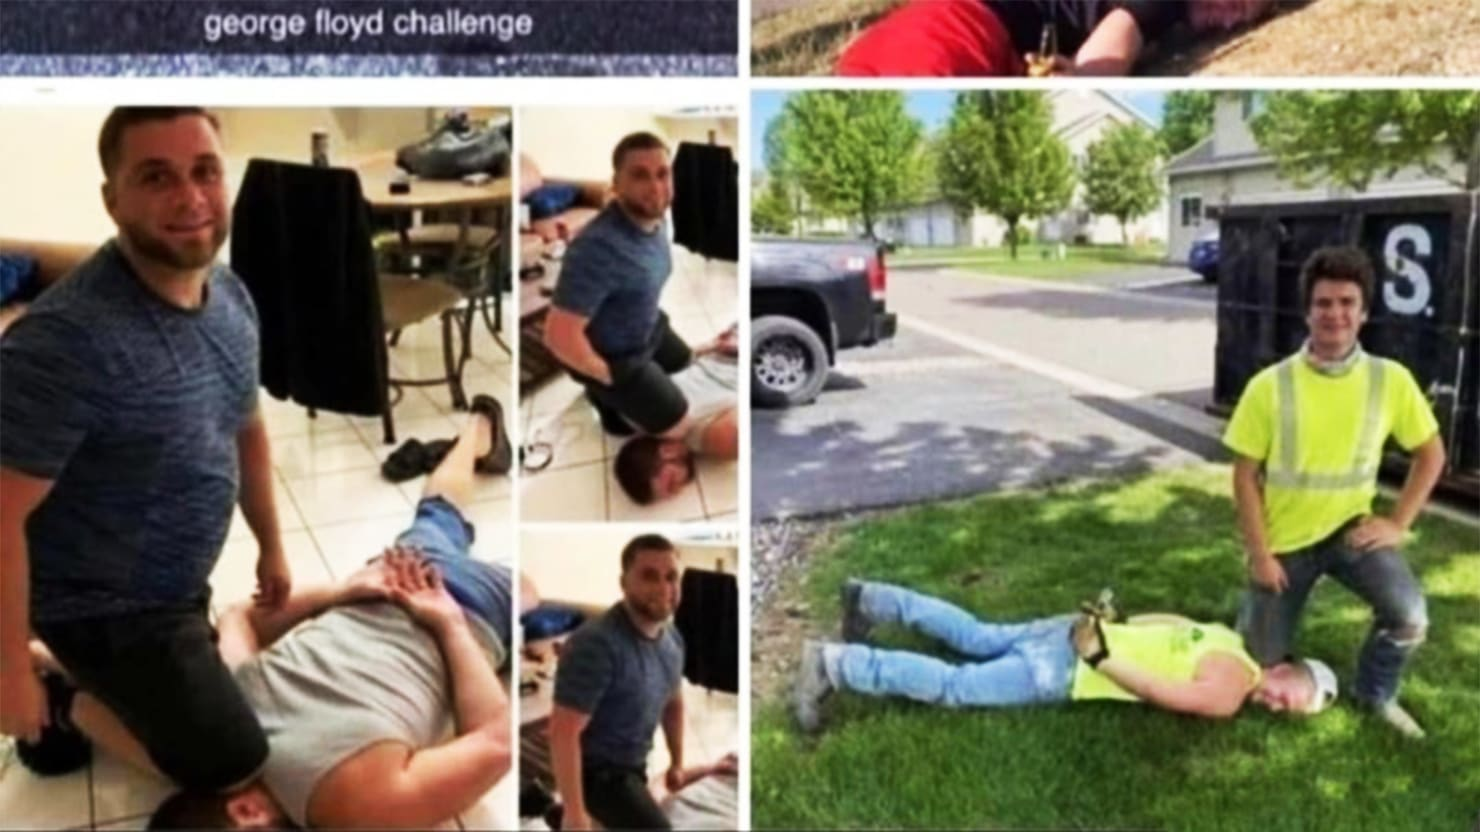 The 'George Floyd Challenge': How a Handful of Racist Idiots Went Viral